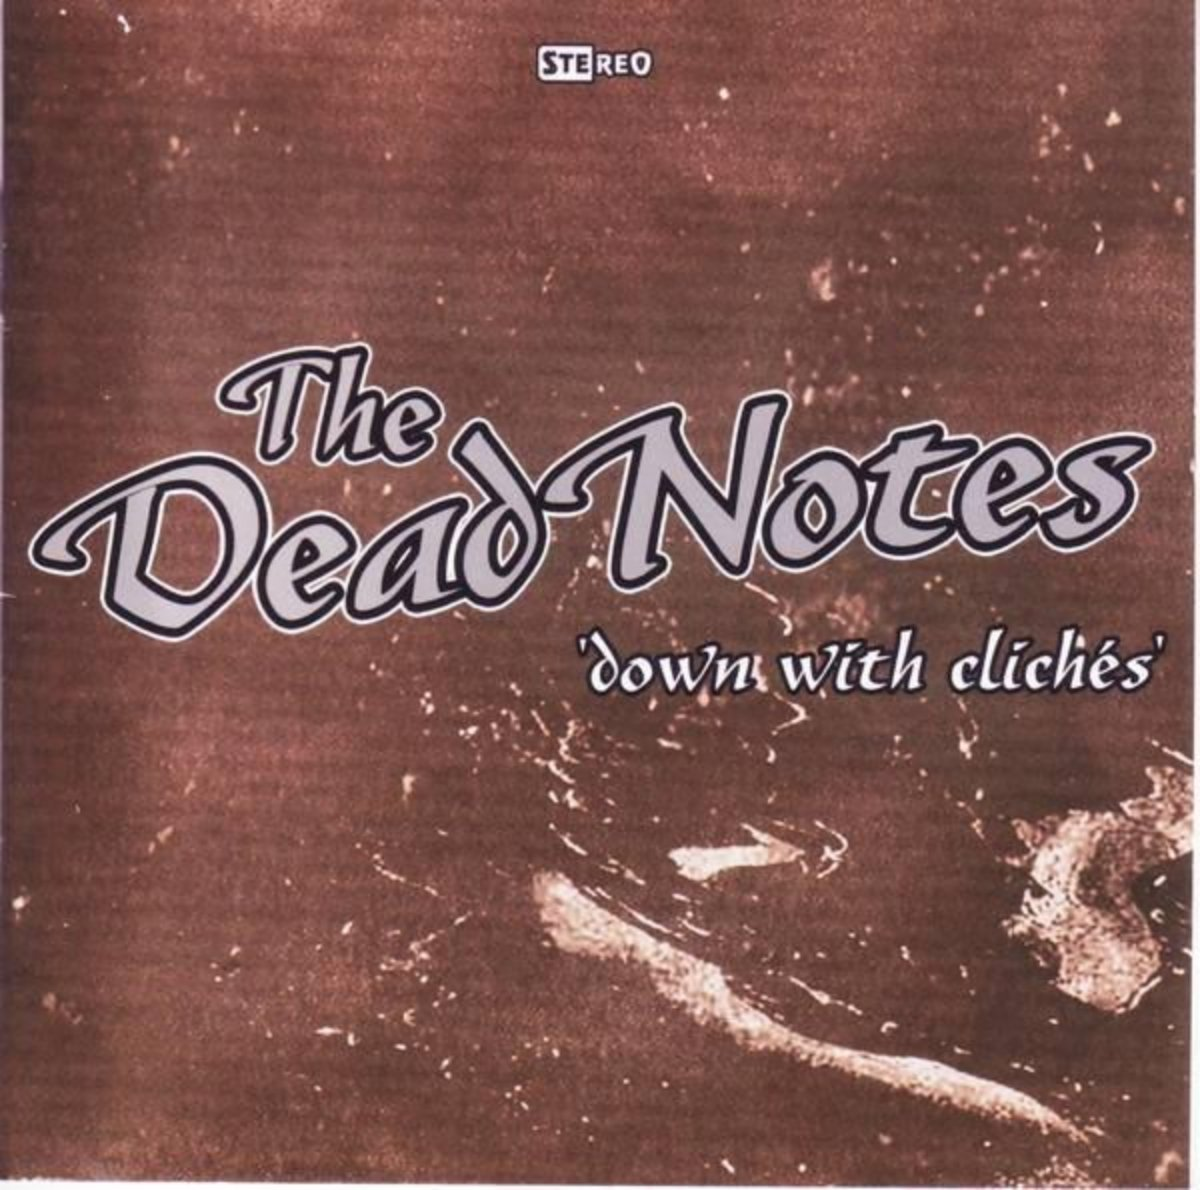 The Dead Notes - Down With Cliches (2007) [FLAC] Download